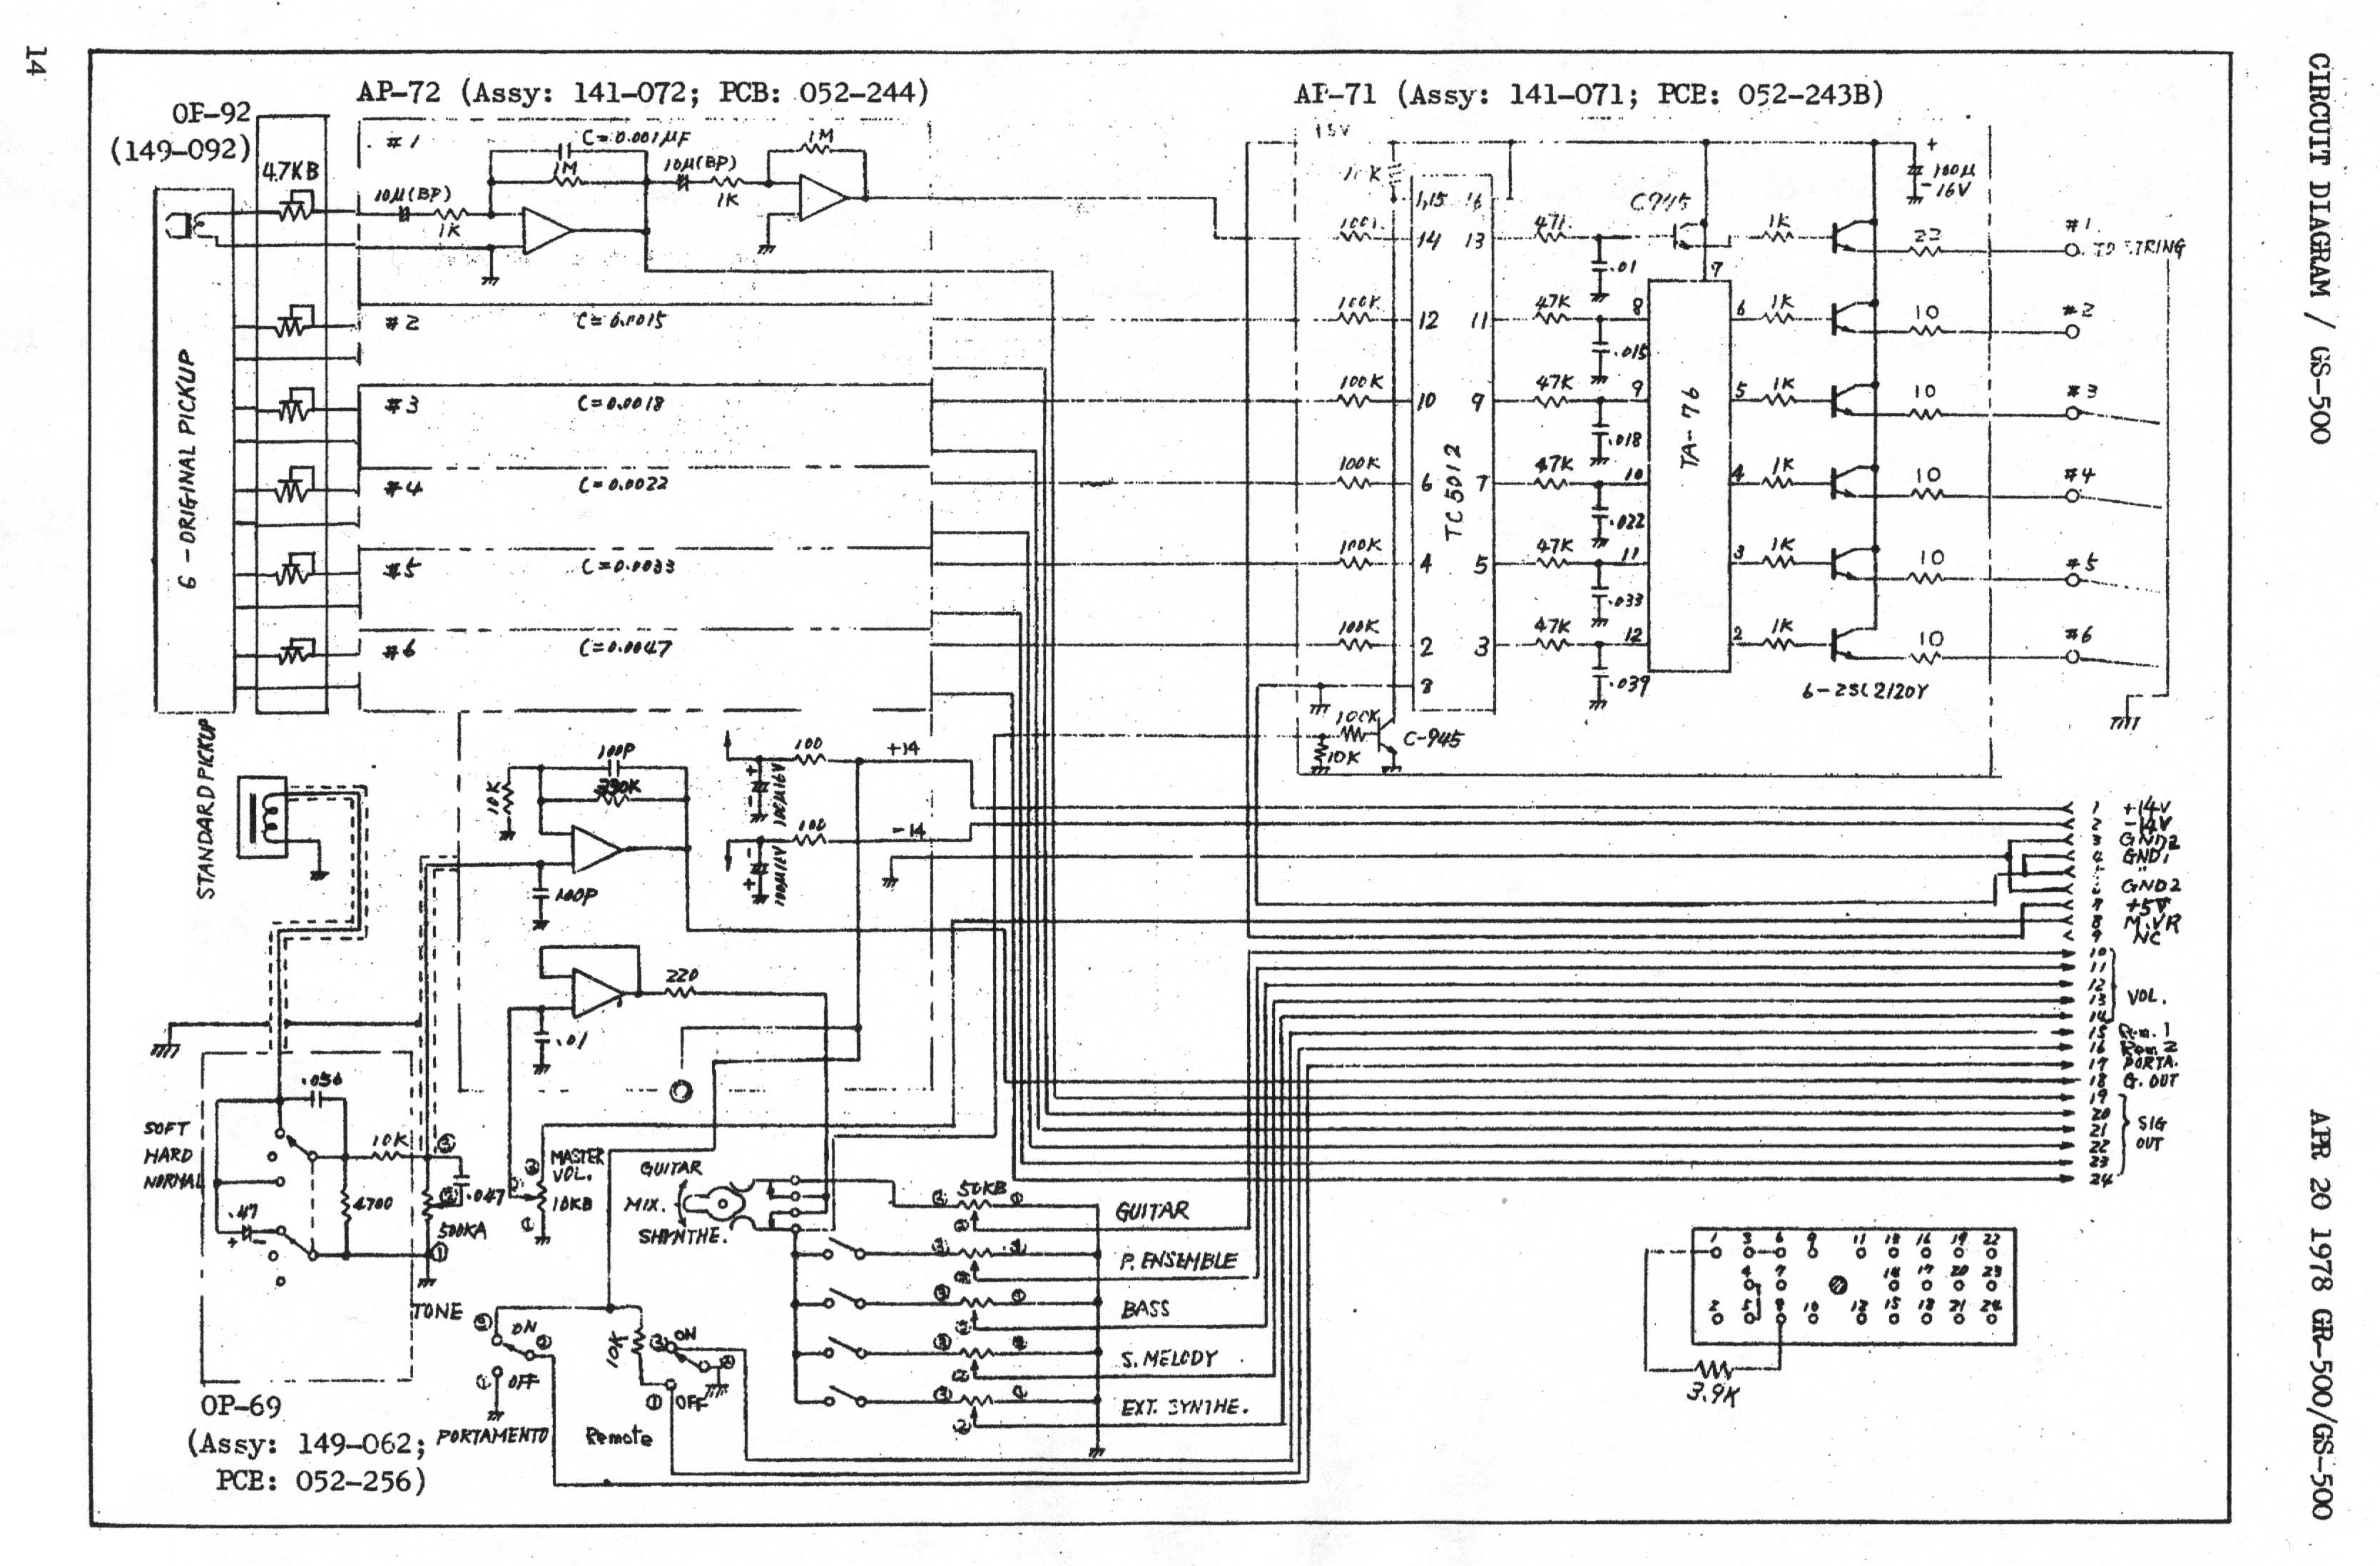 Roland Gs 500 Gr Vintage Analog 1977 Guitar Synthesizer Controller End Pin Wiring Diagram Download The Schematic